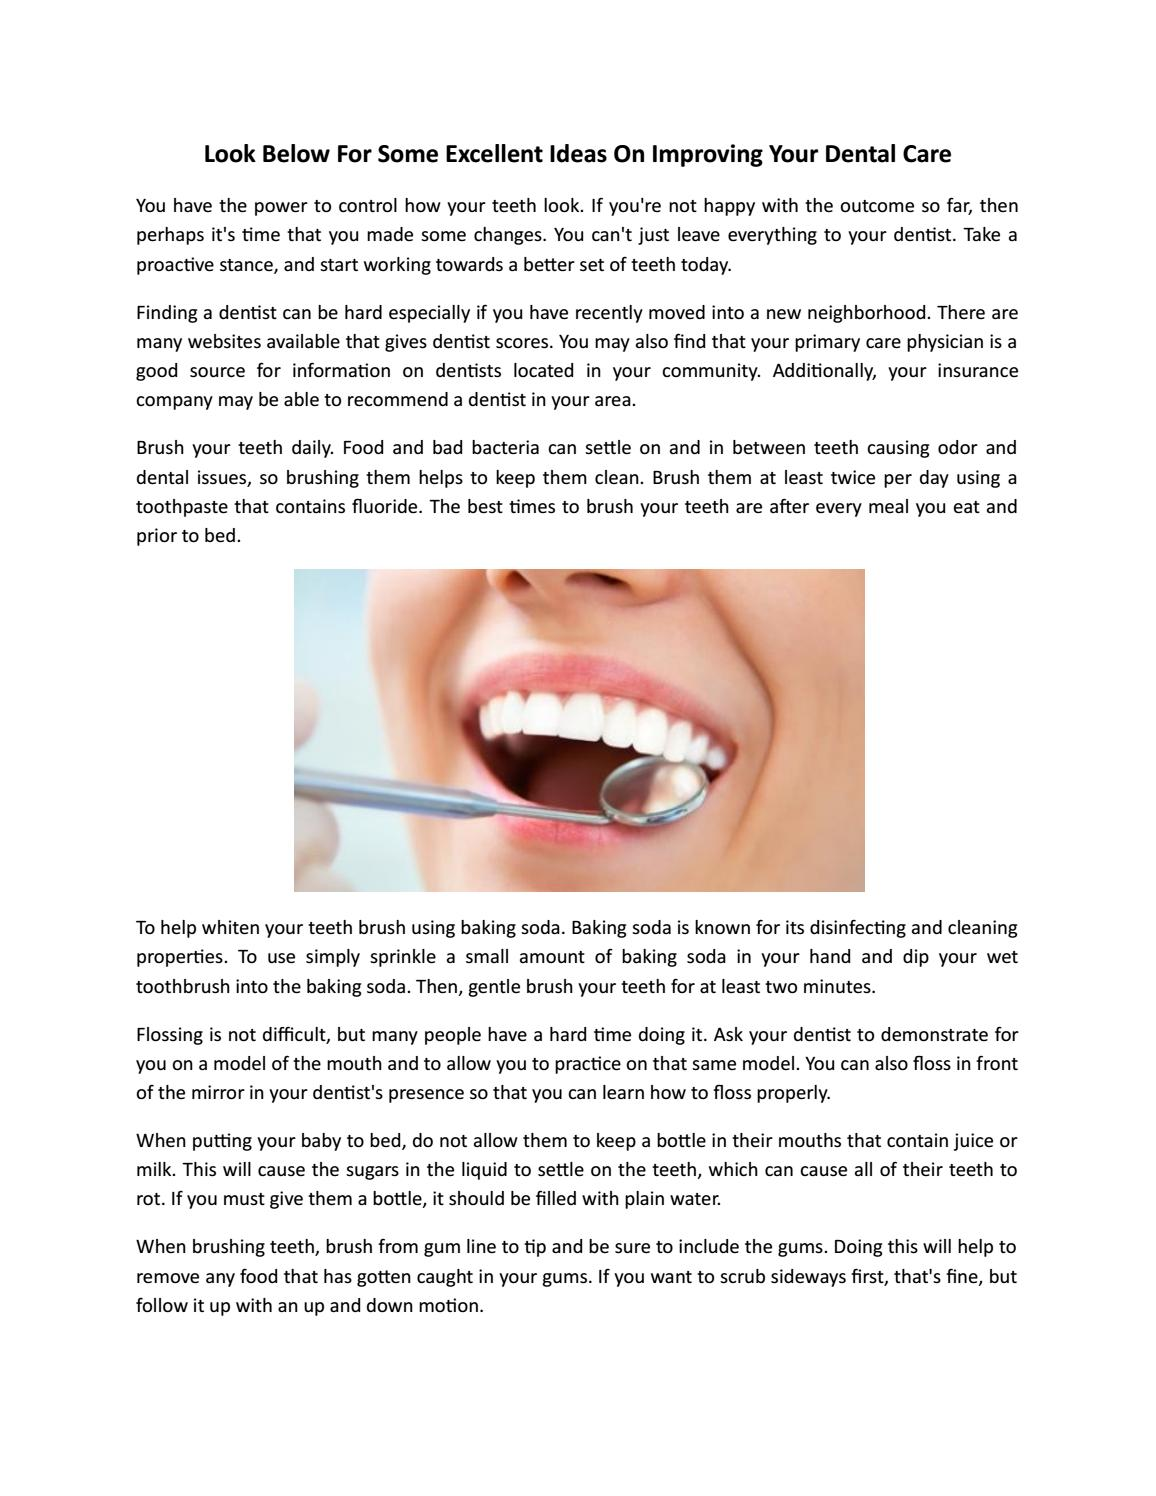 Avondale Dental Clinic by Avondale Dental Clinic - issuu